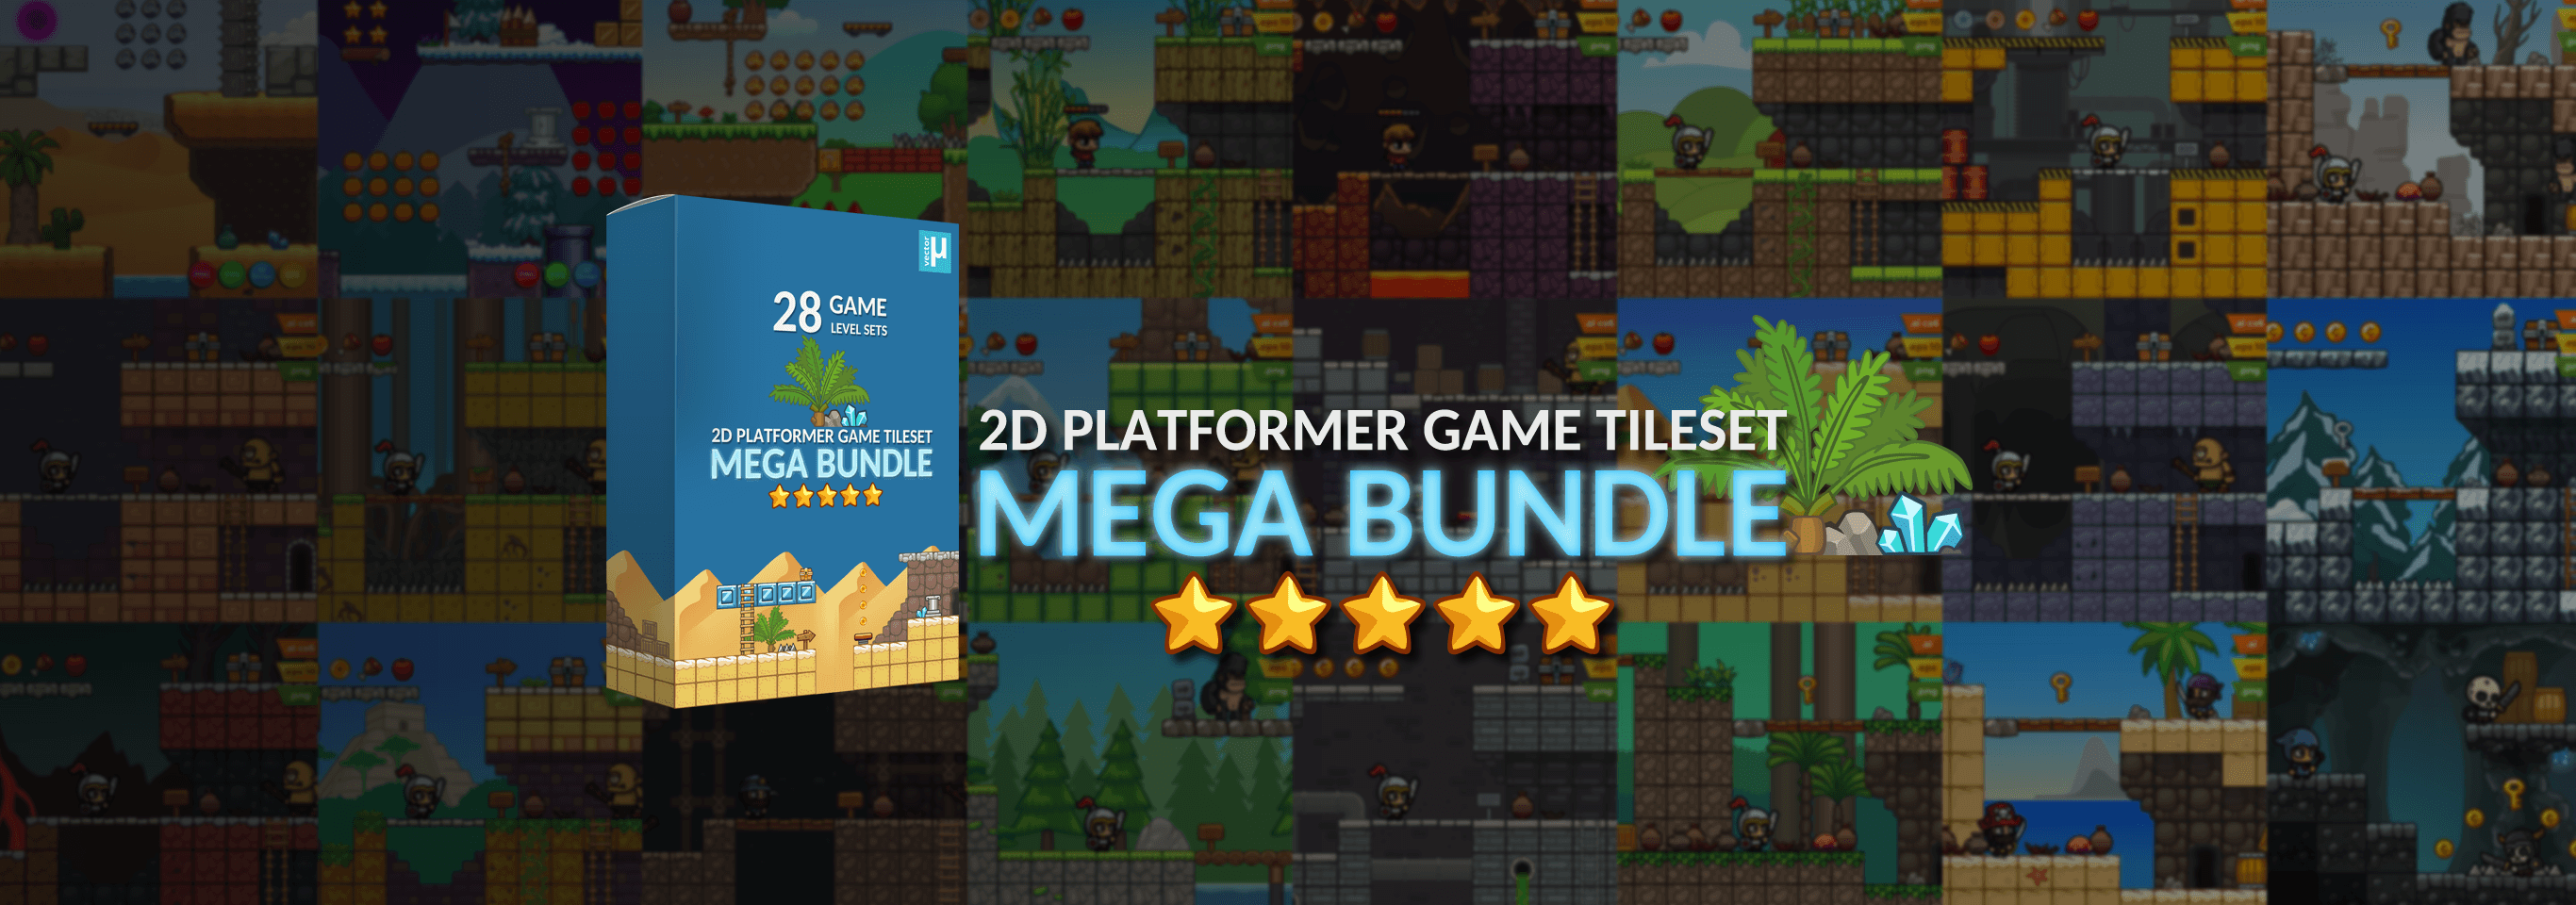 2D Platformer Game Tileset Mega Bundle